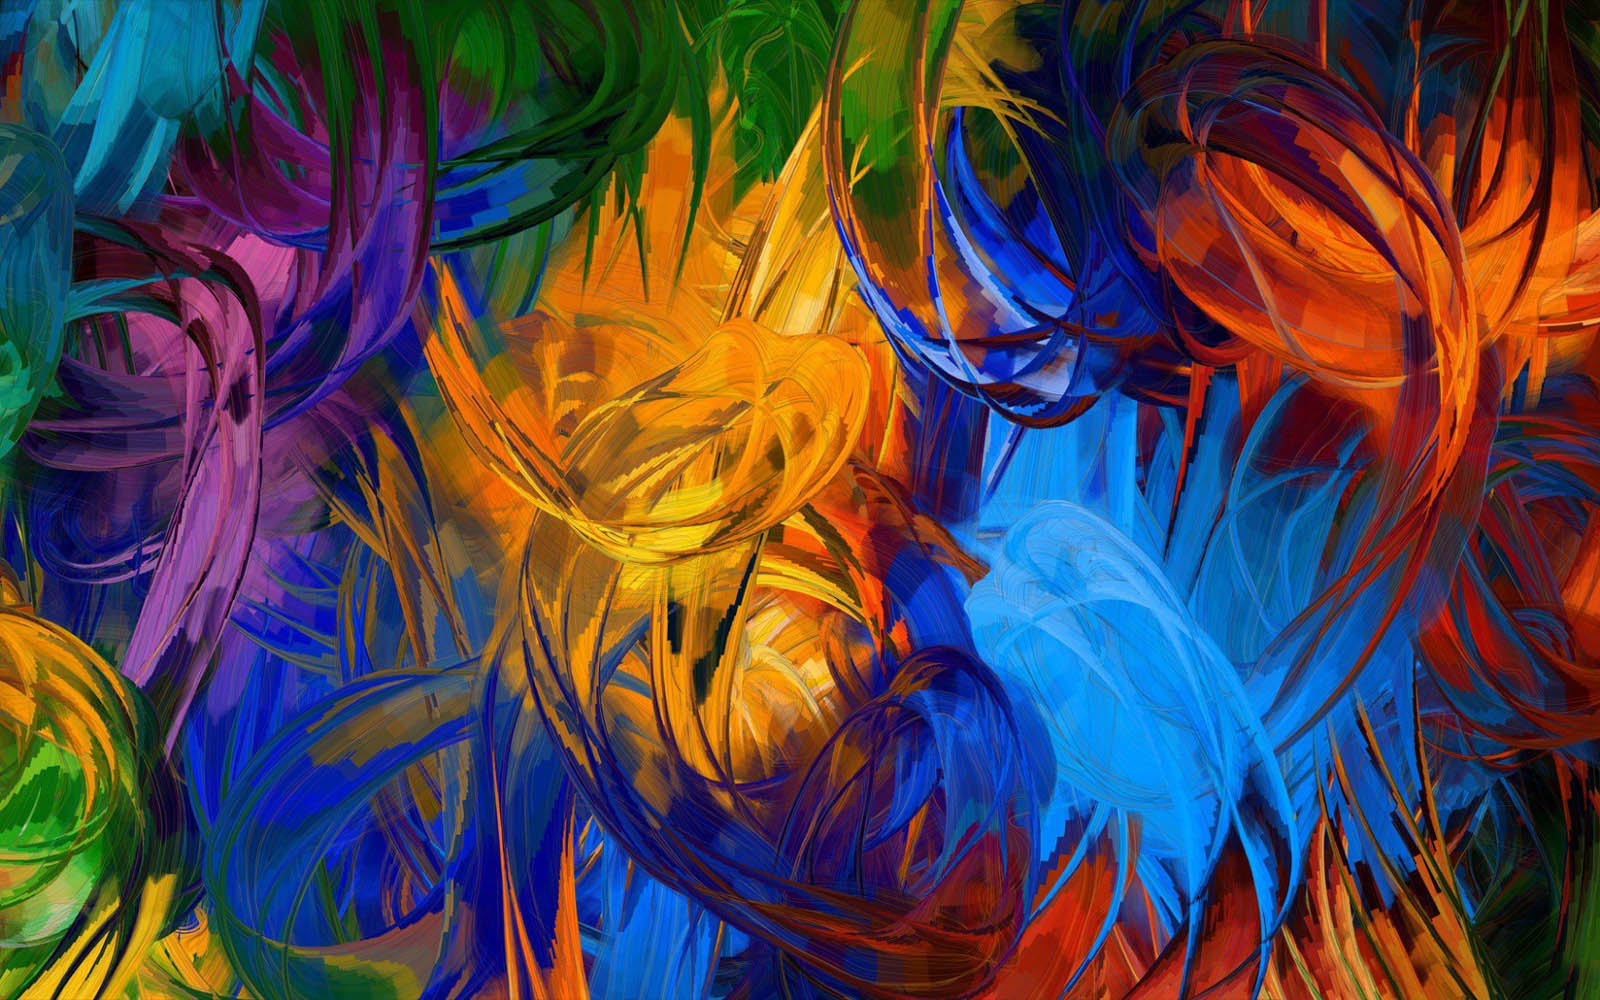 Abstract Paintings Wallpapers AbstractPaintings Desktop Wallpapers 1600x1000